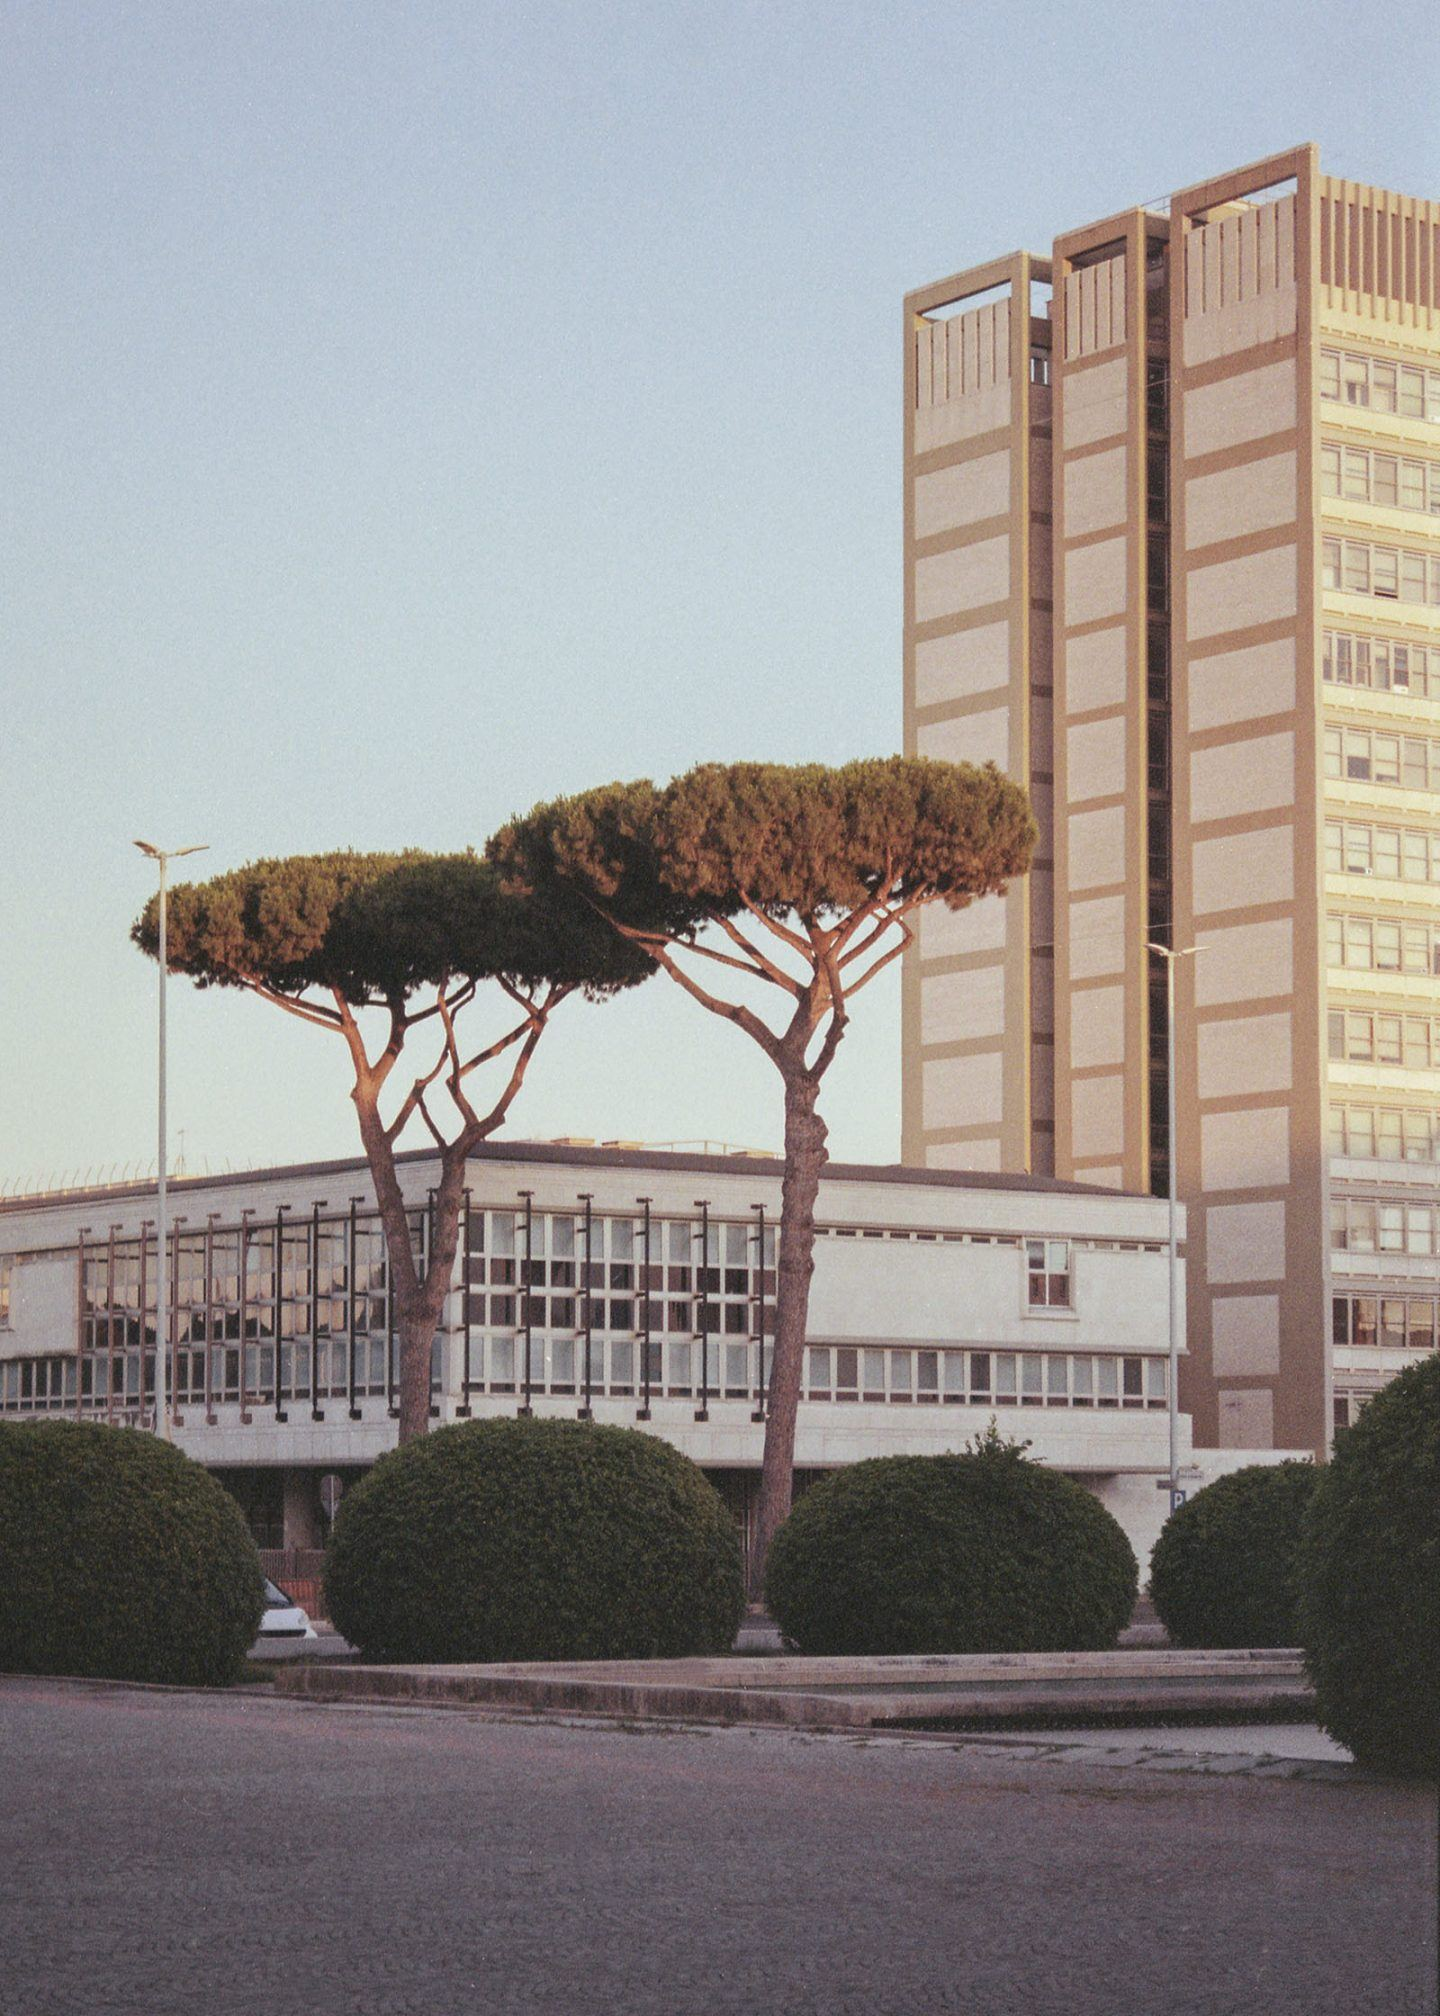 Another Rome_10